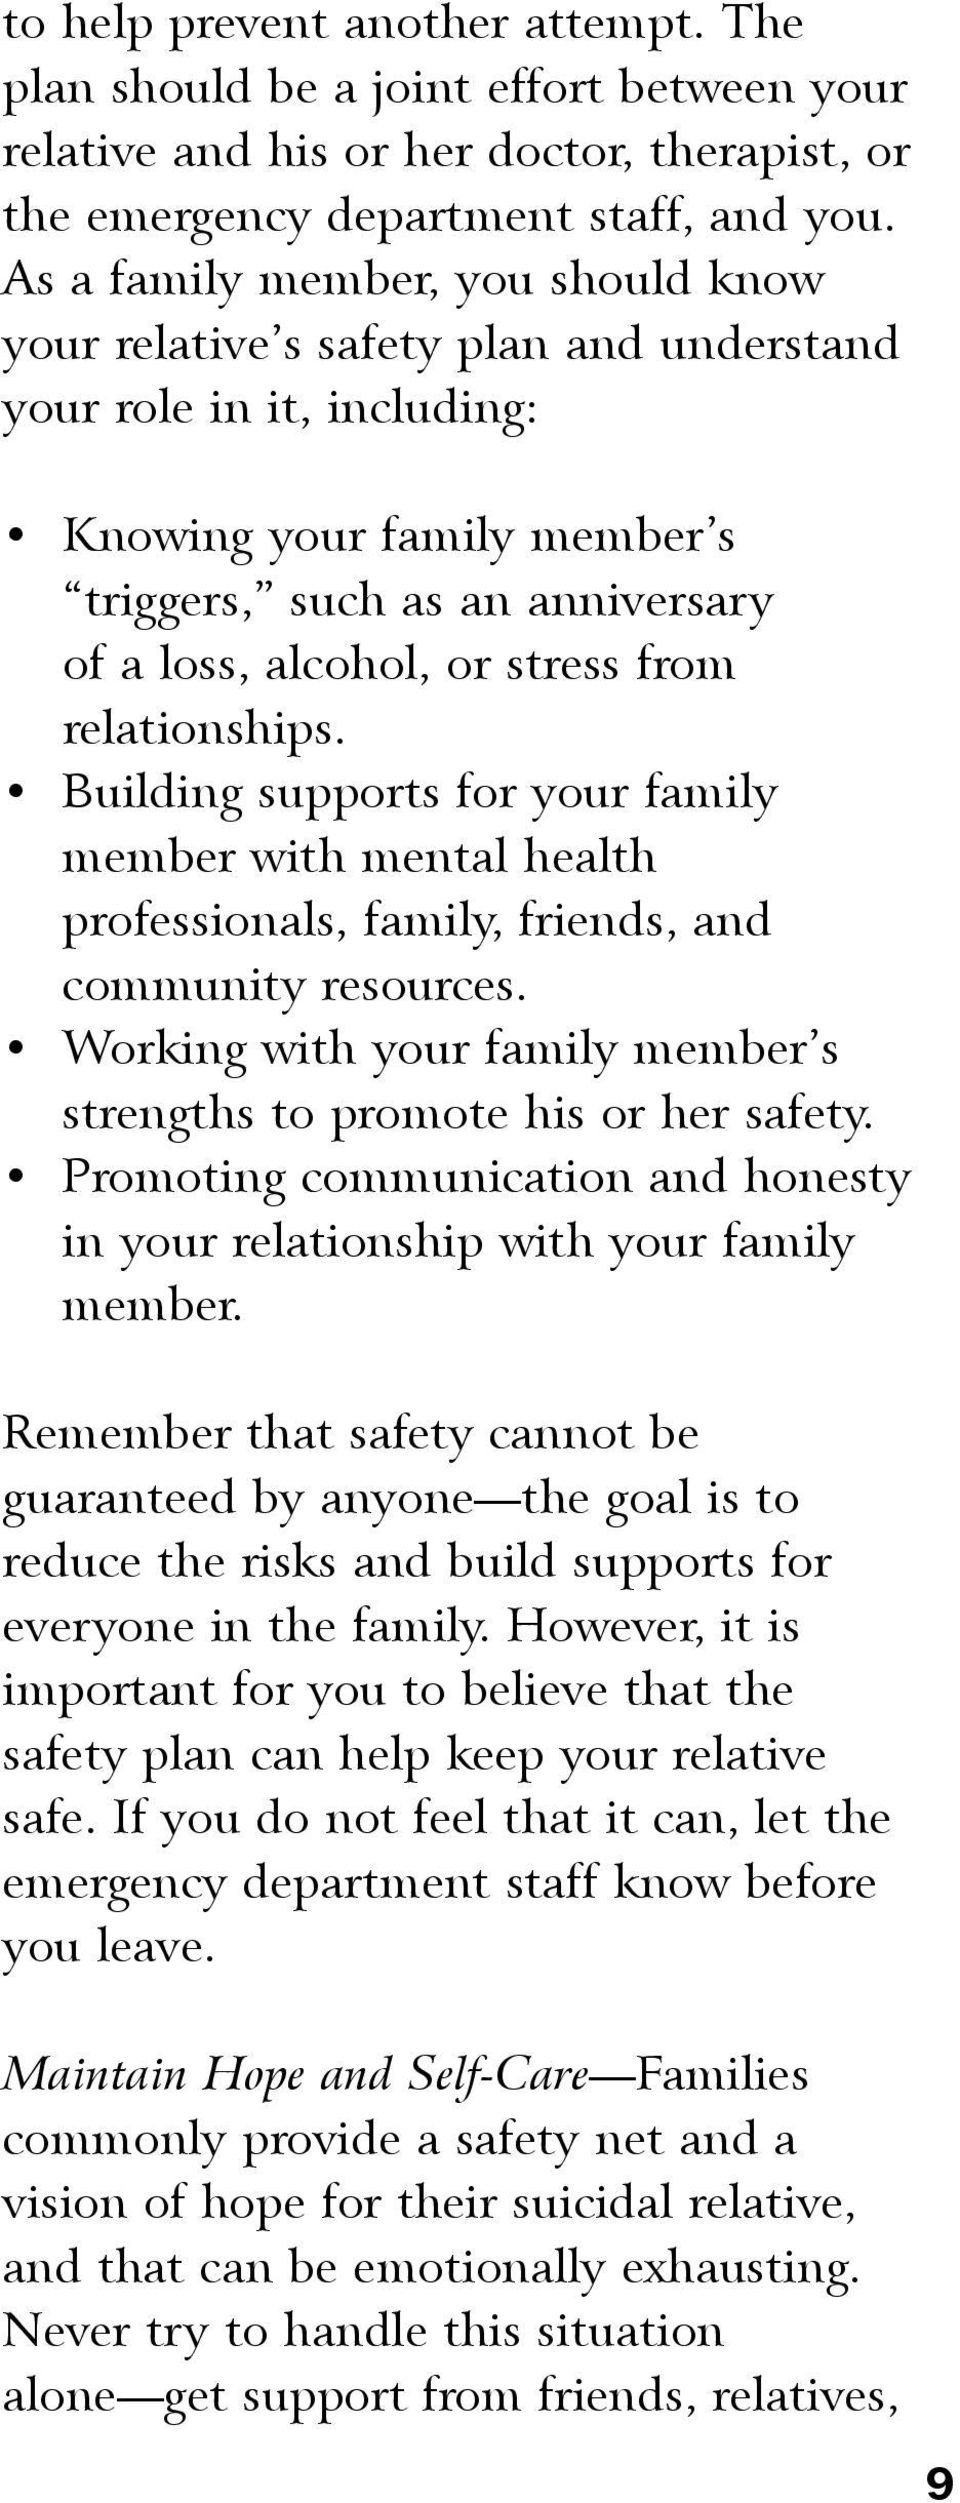 from relationships. Building supports for your family member with mental health professionals, family, friends, and community resources.